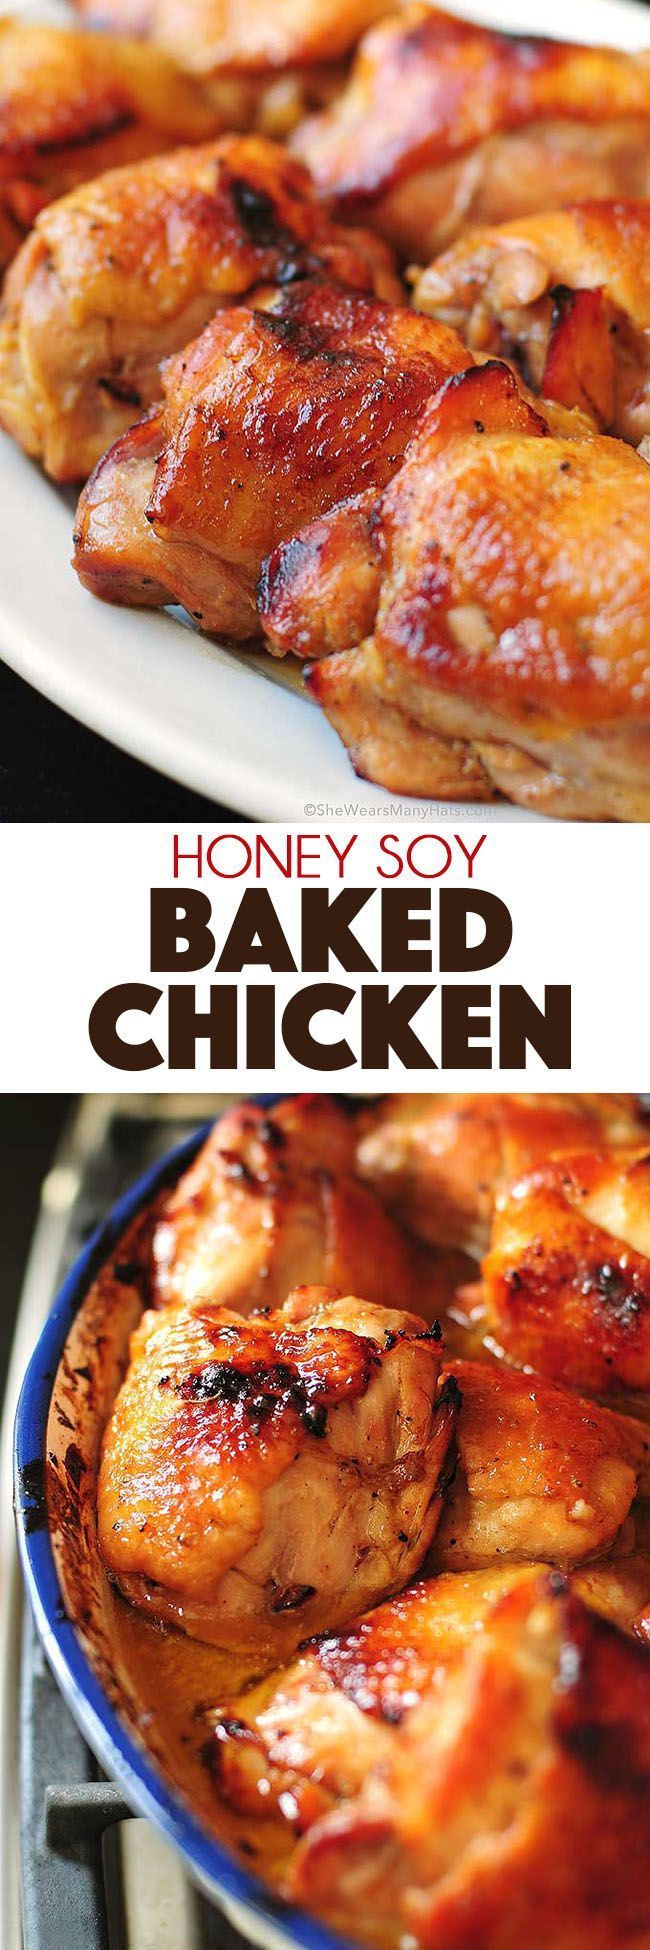 A super easy chicken recipe that will become a family favorite. Honey Soy Baked Chicken Recipe would be delicious cooked on the grill as well! find the recipe at http://TidyMom.net